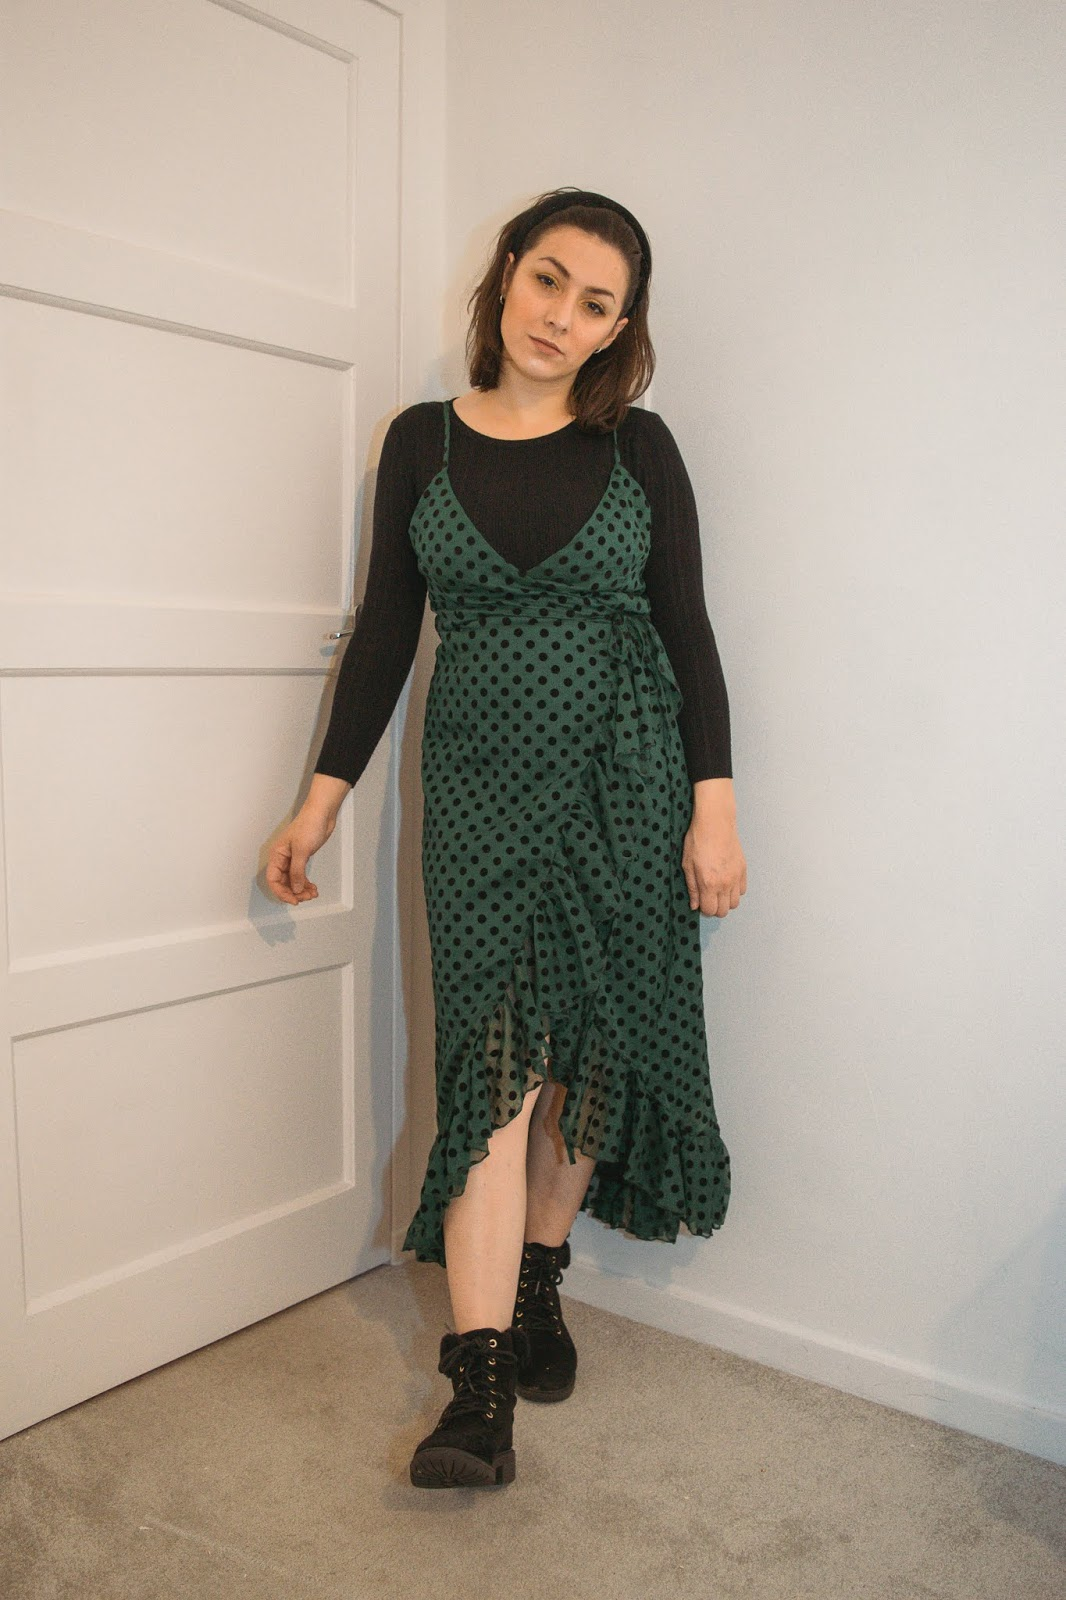 I am standing against a white background and I am wearing a black ribbed long sleeve top under a green frill polka dot dress that is a mid length. I am wearing black boots with fluffy trim.